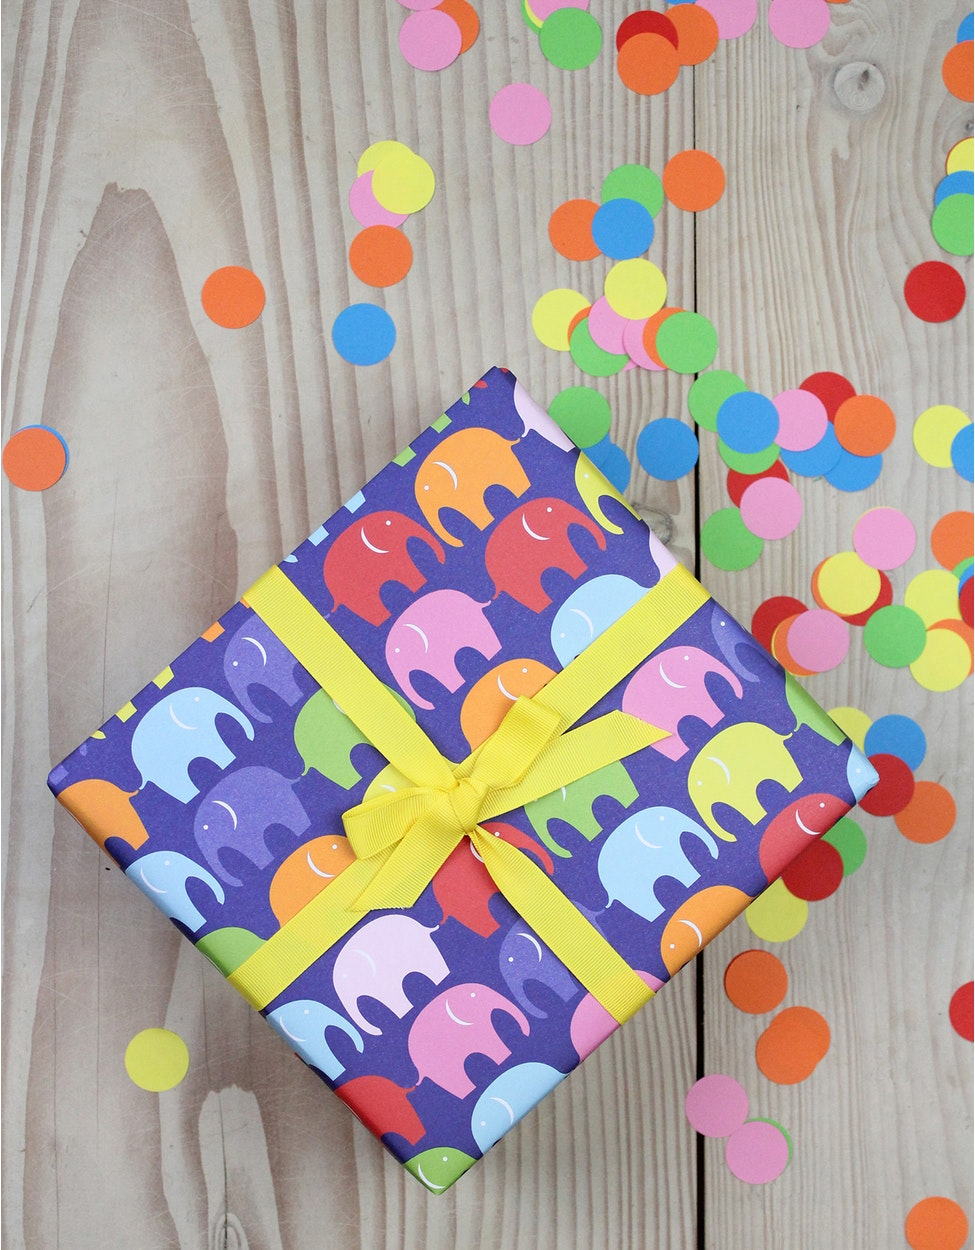 WRAPMULTIELLY+Multi+Elly+Wrapping+Paper